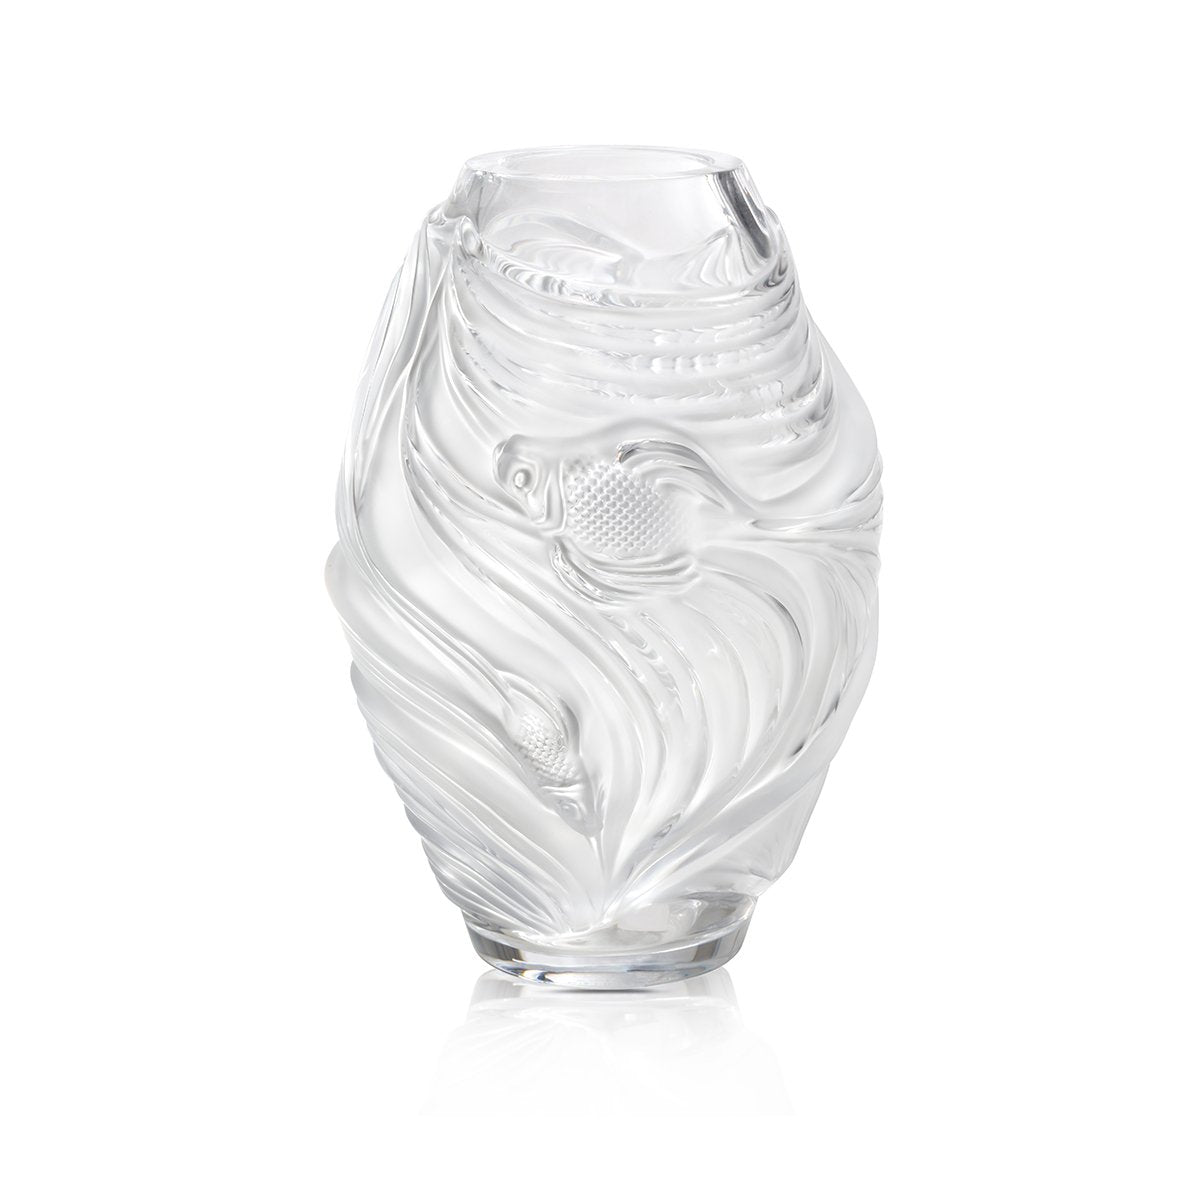 LALIQUE LARGE POISSON COMBATTANTS Vase-Hamilton & Inches